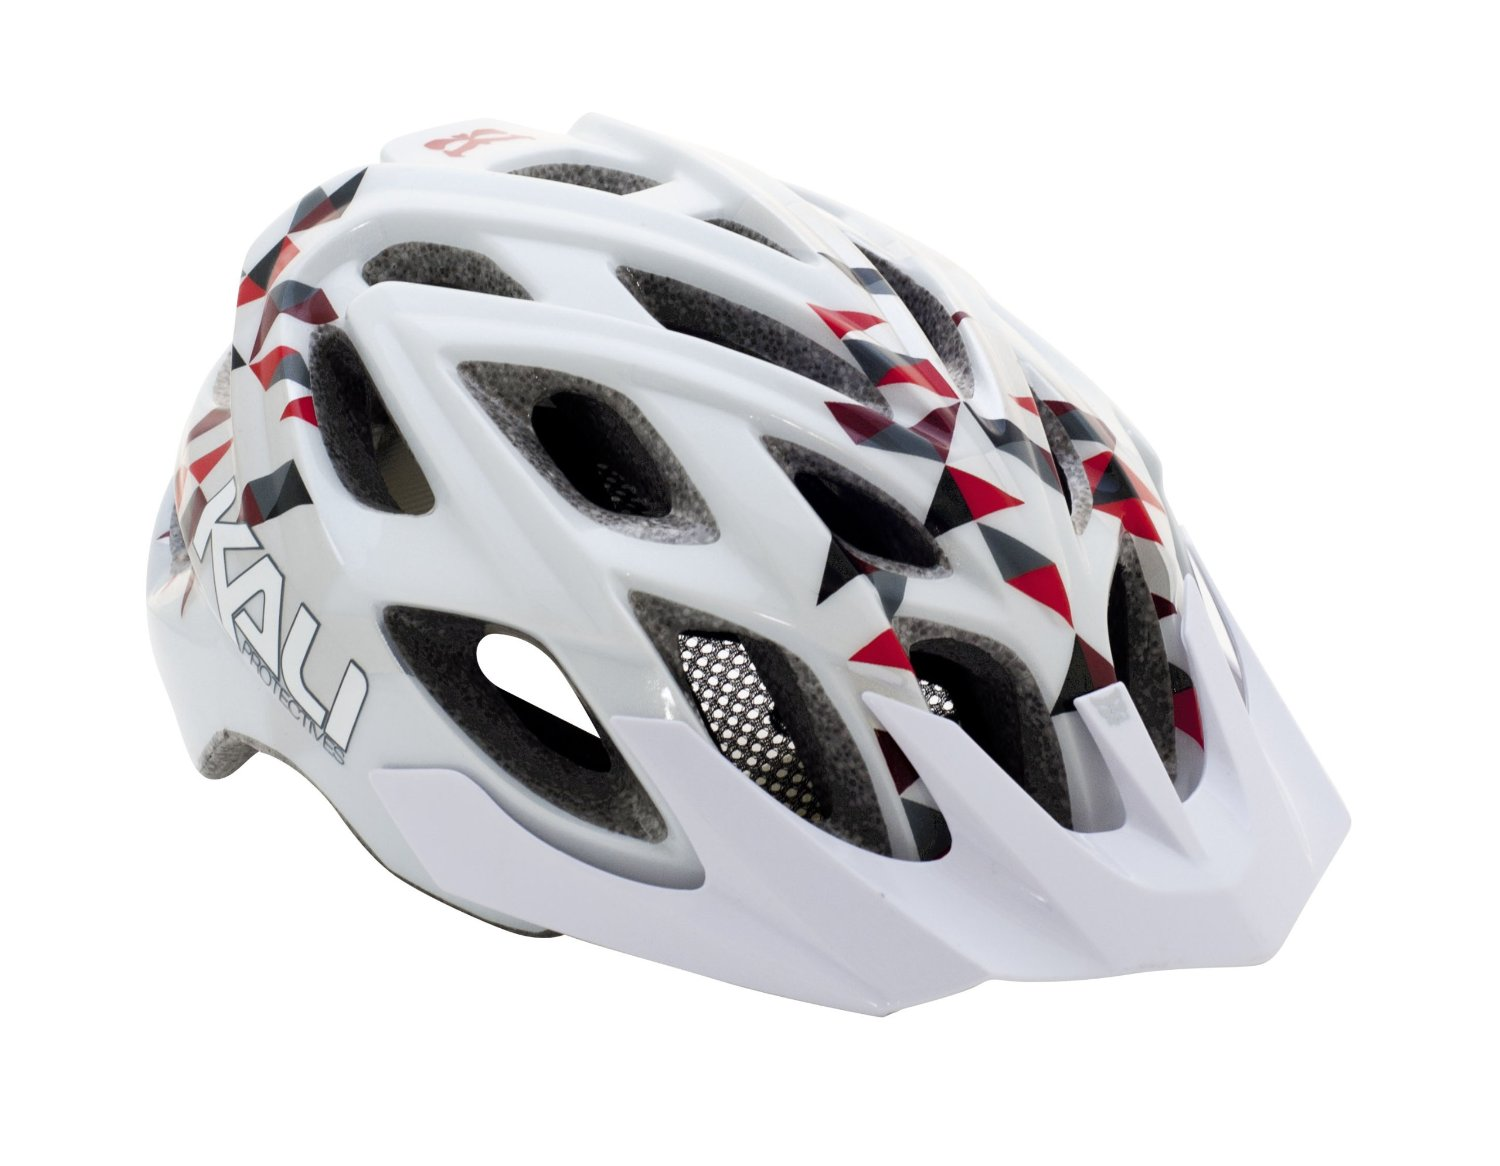 Best Selling Kali Protectives Bicycle Helmets